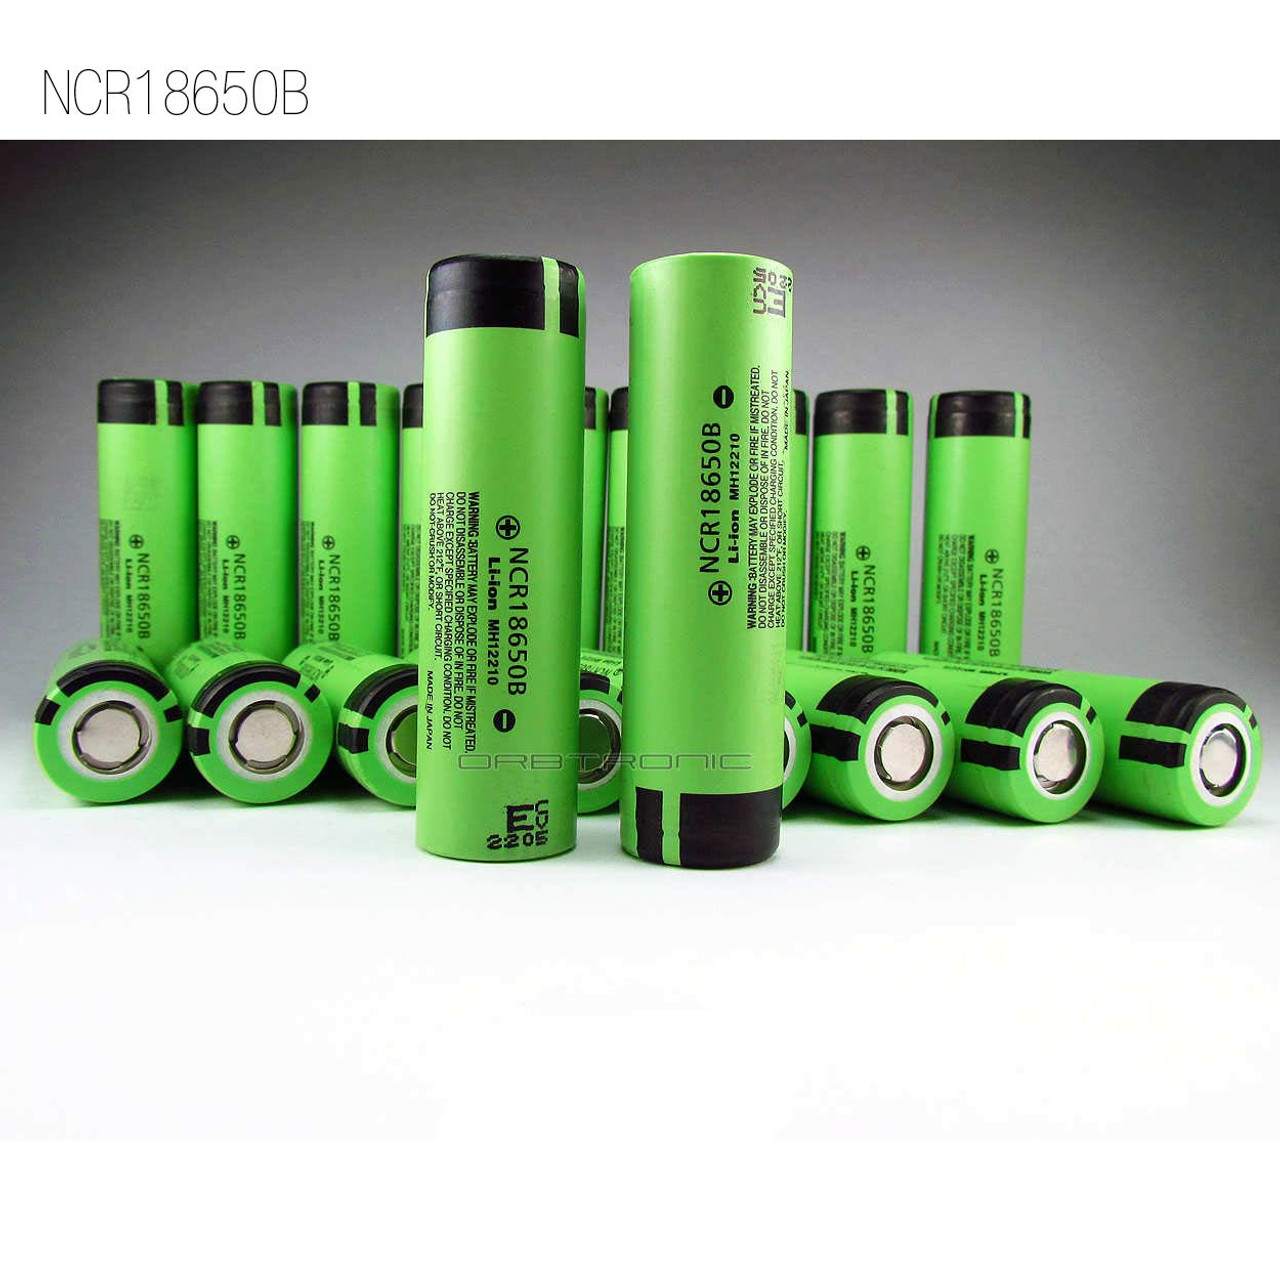 NCR 18650B Battery 3.7V 3400mAh Li-ion Rechargeable Cell For Torch Power